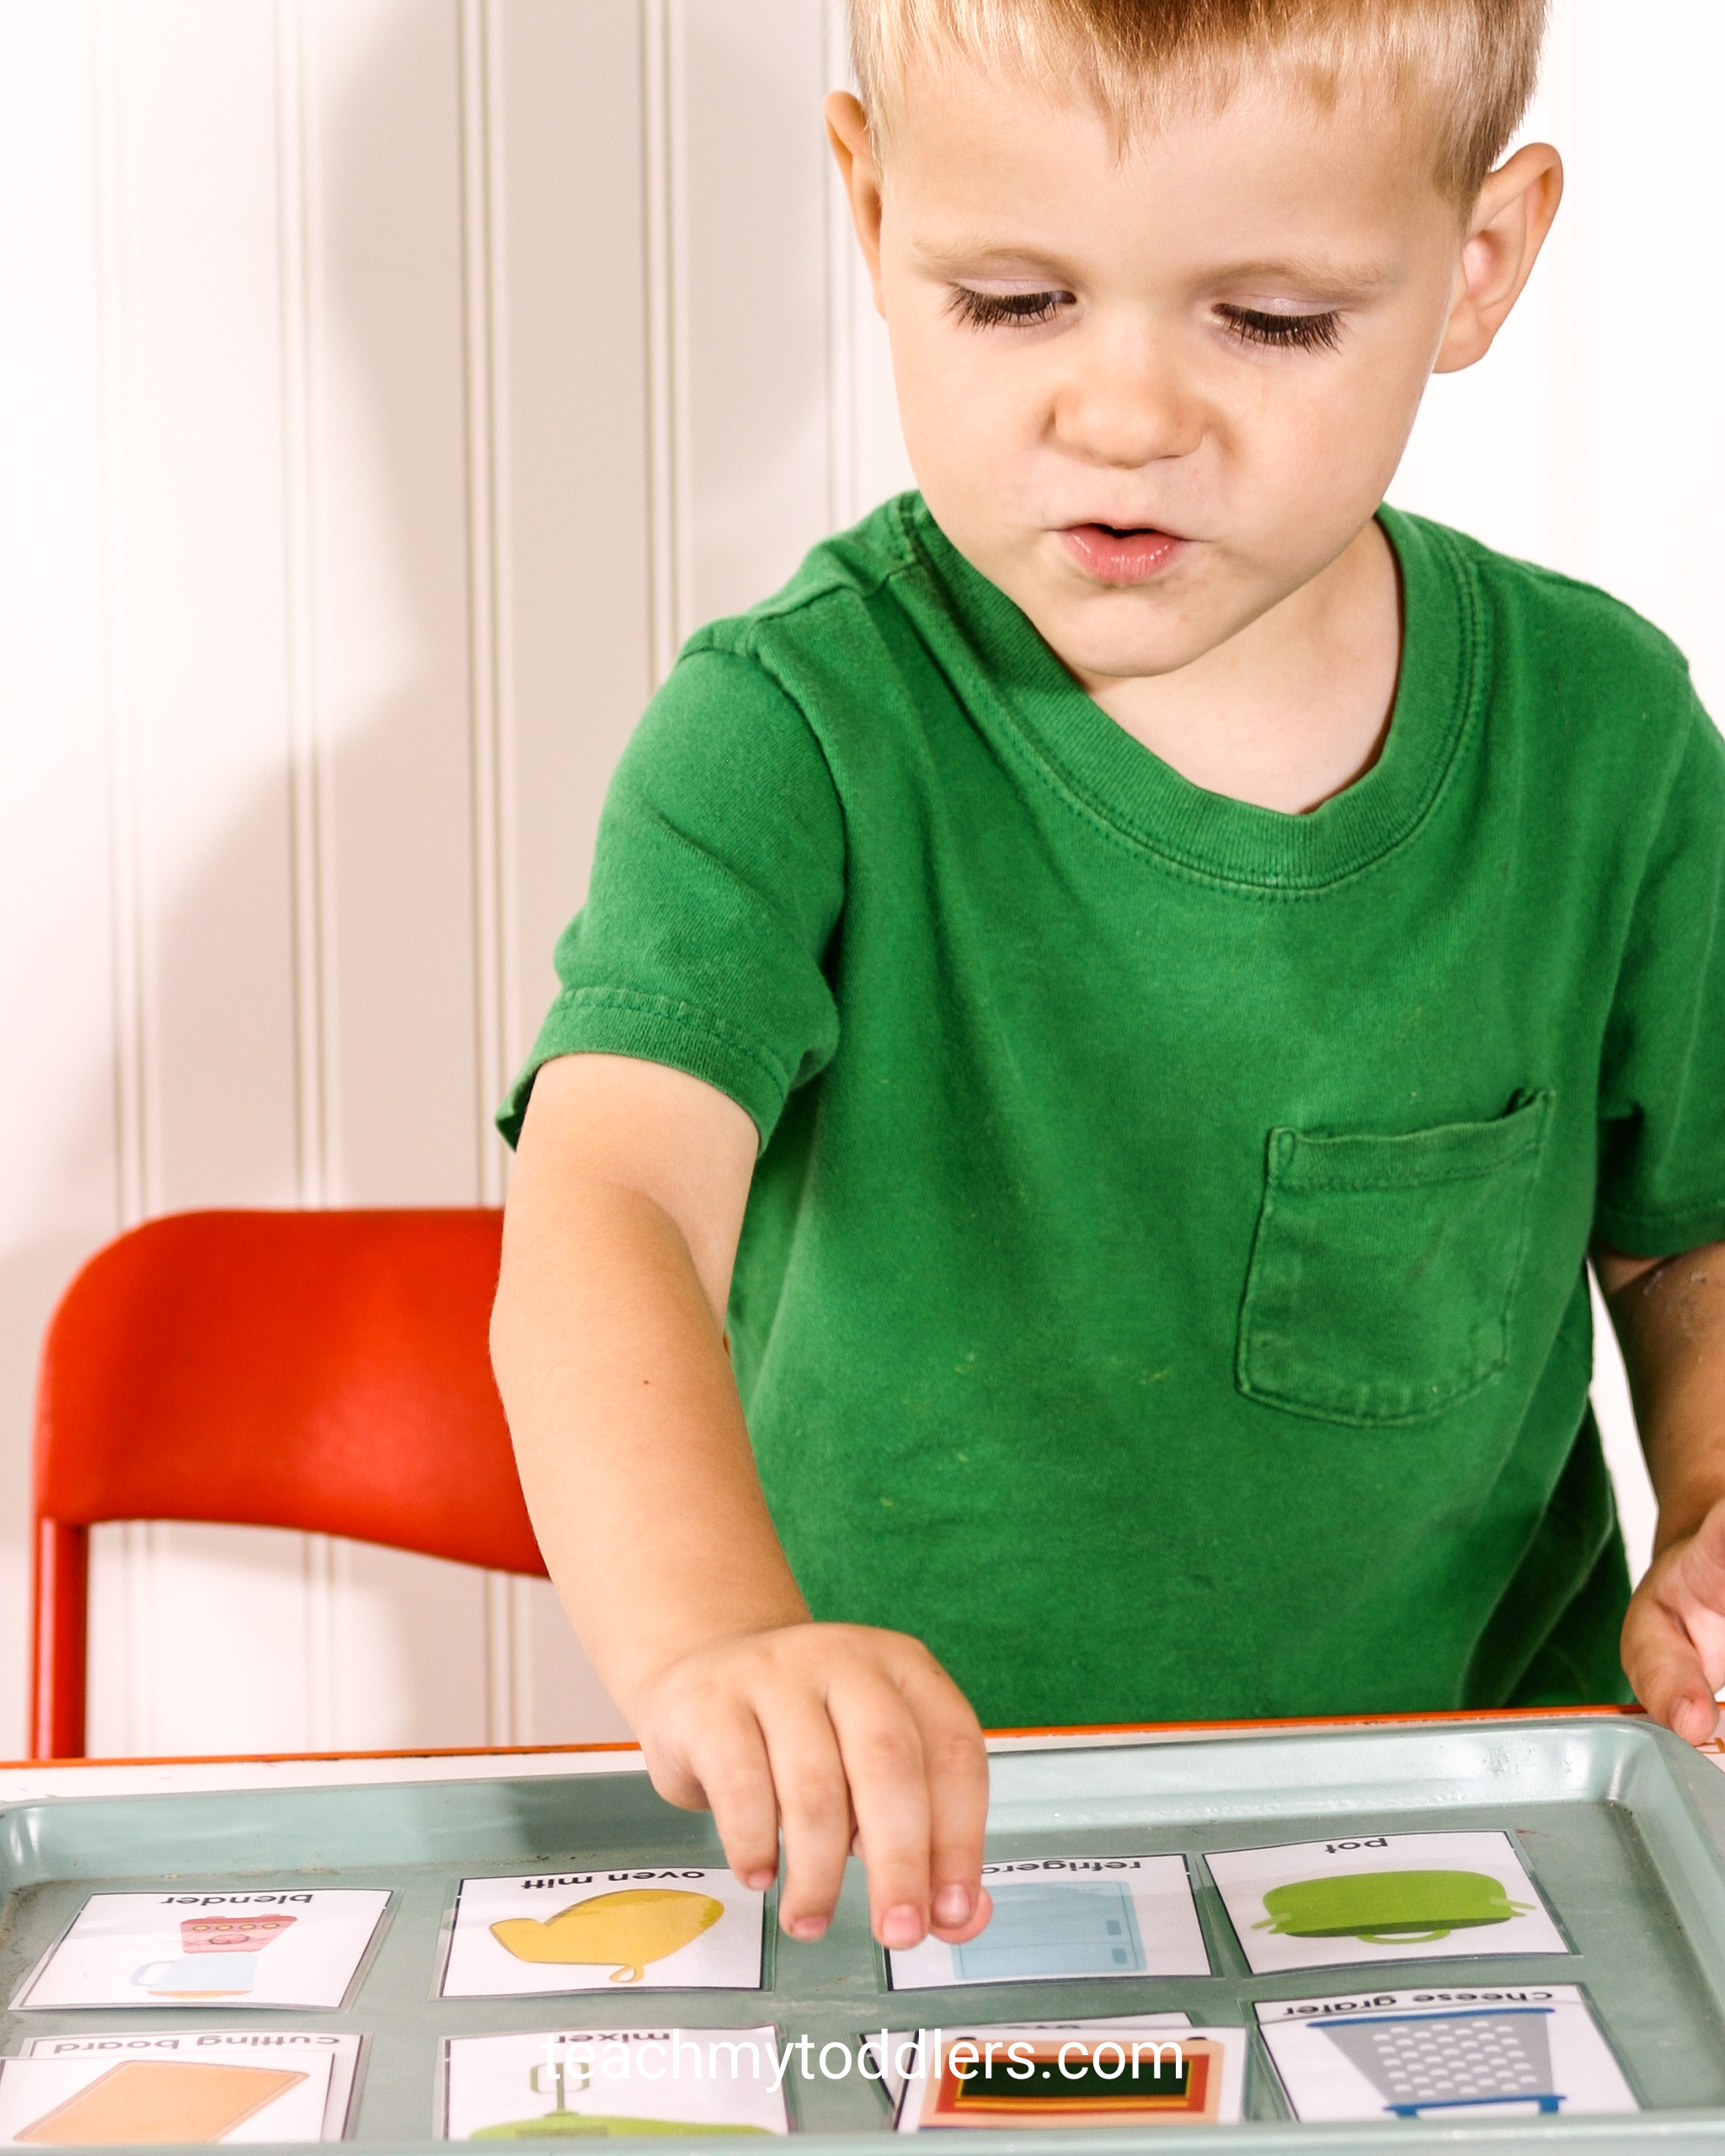 Use these fun kitchen activities to teach toddler the letter k